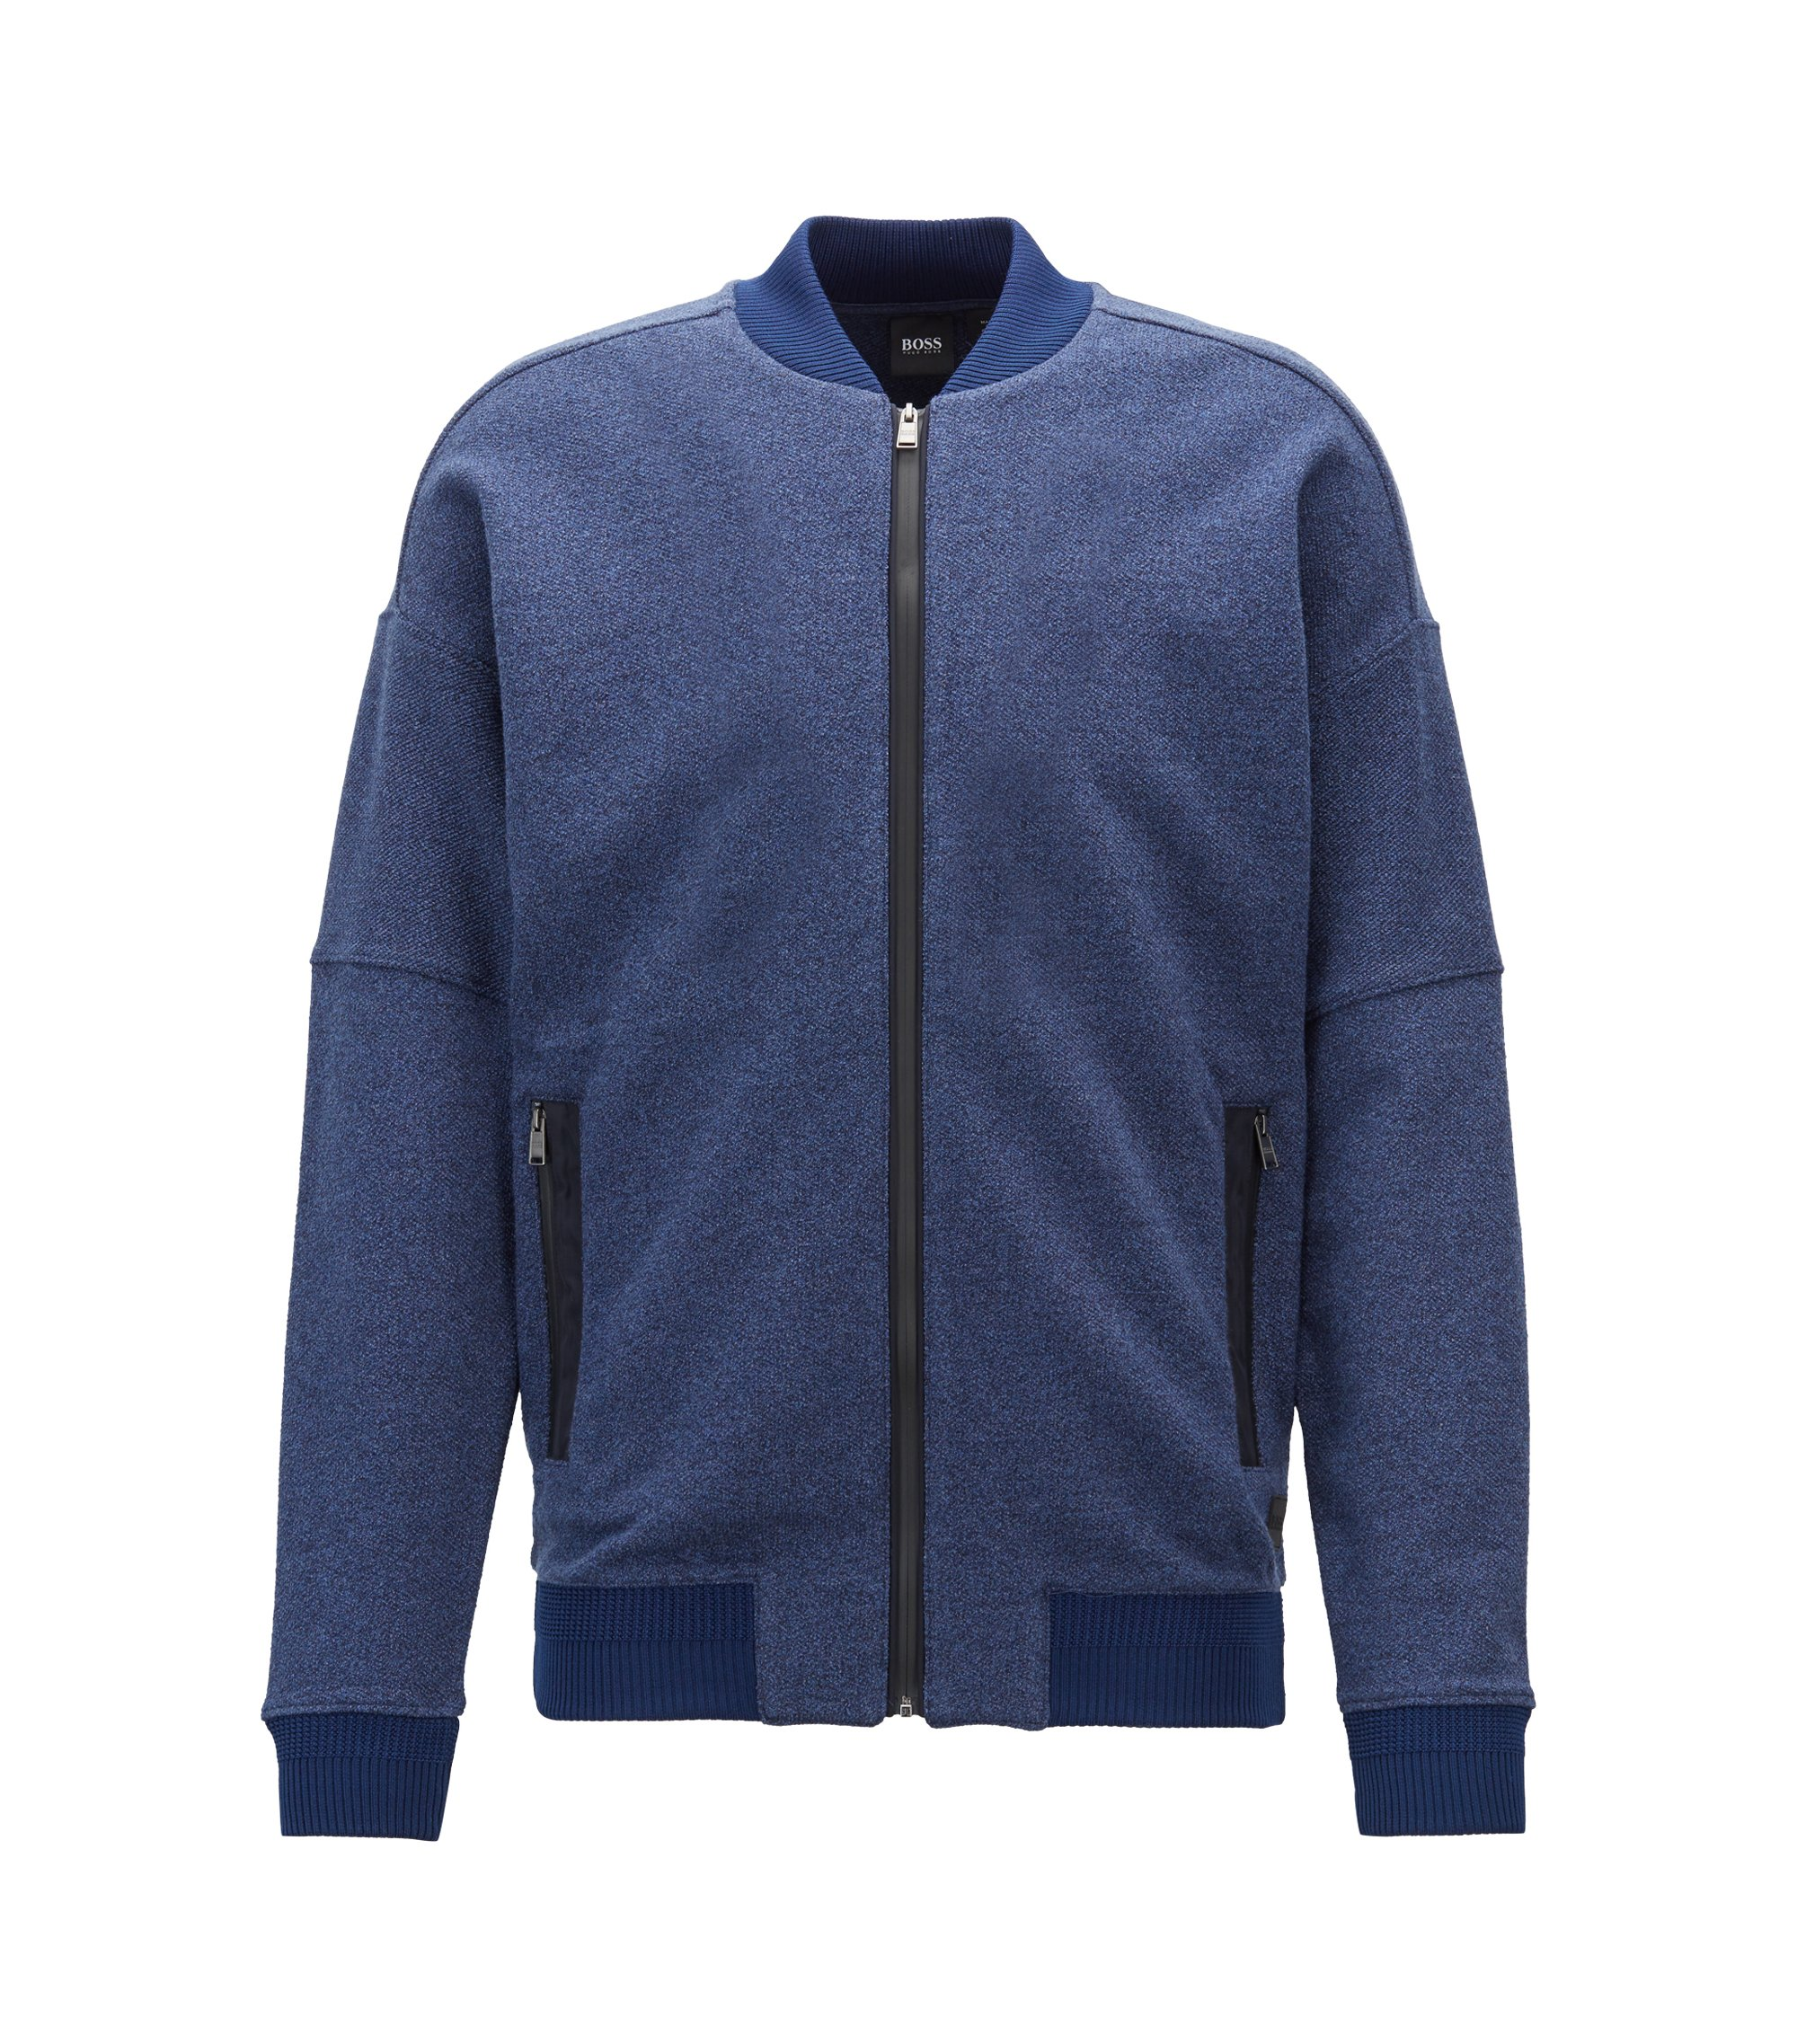 Sweat zippé en molleton French Terry de coton effet denim chiné, Bleu